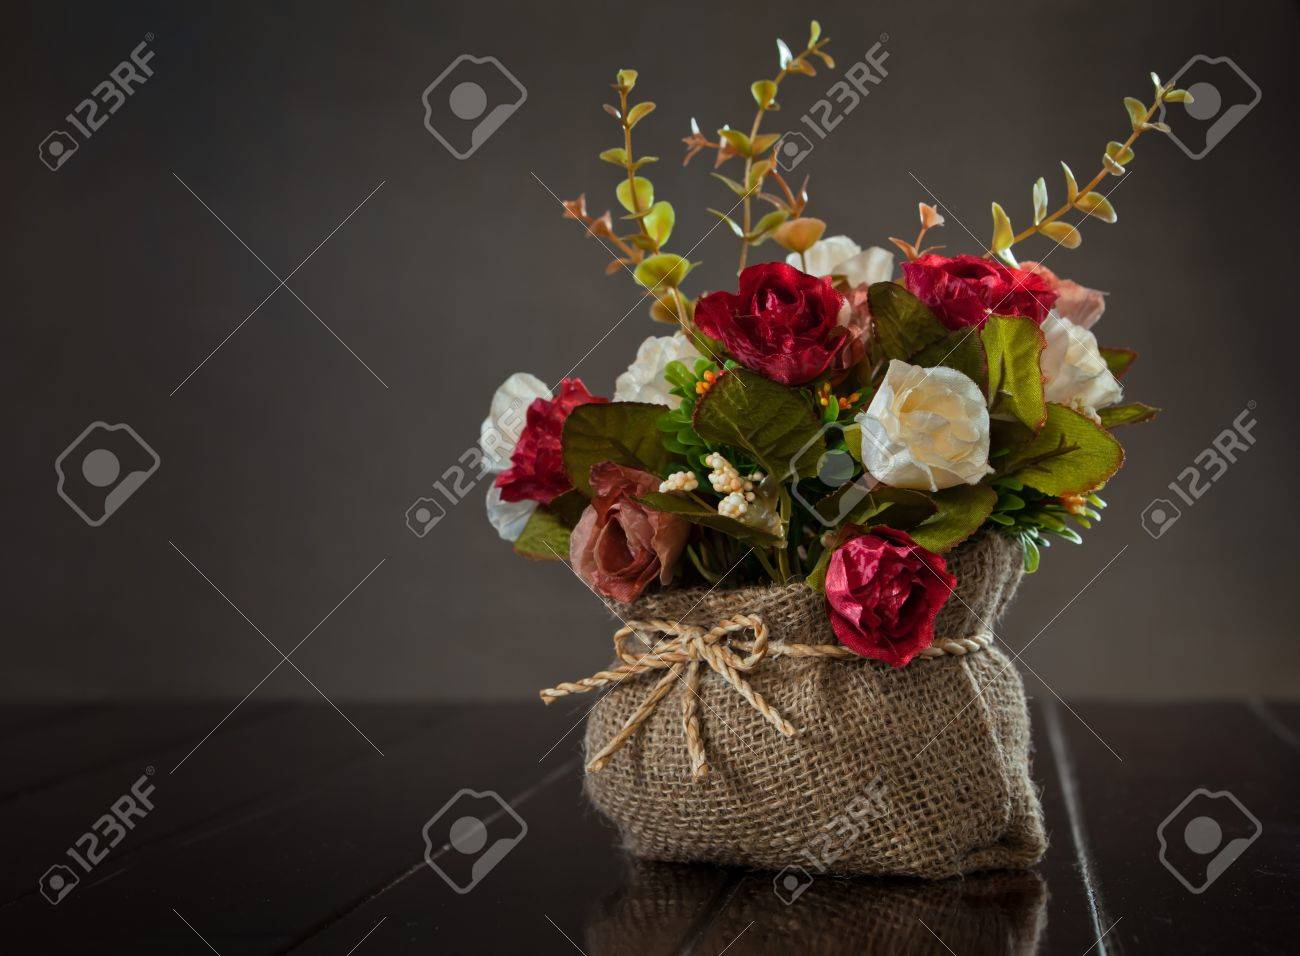 still life with rose flower on wall background Stock Photo - 14601768